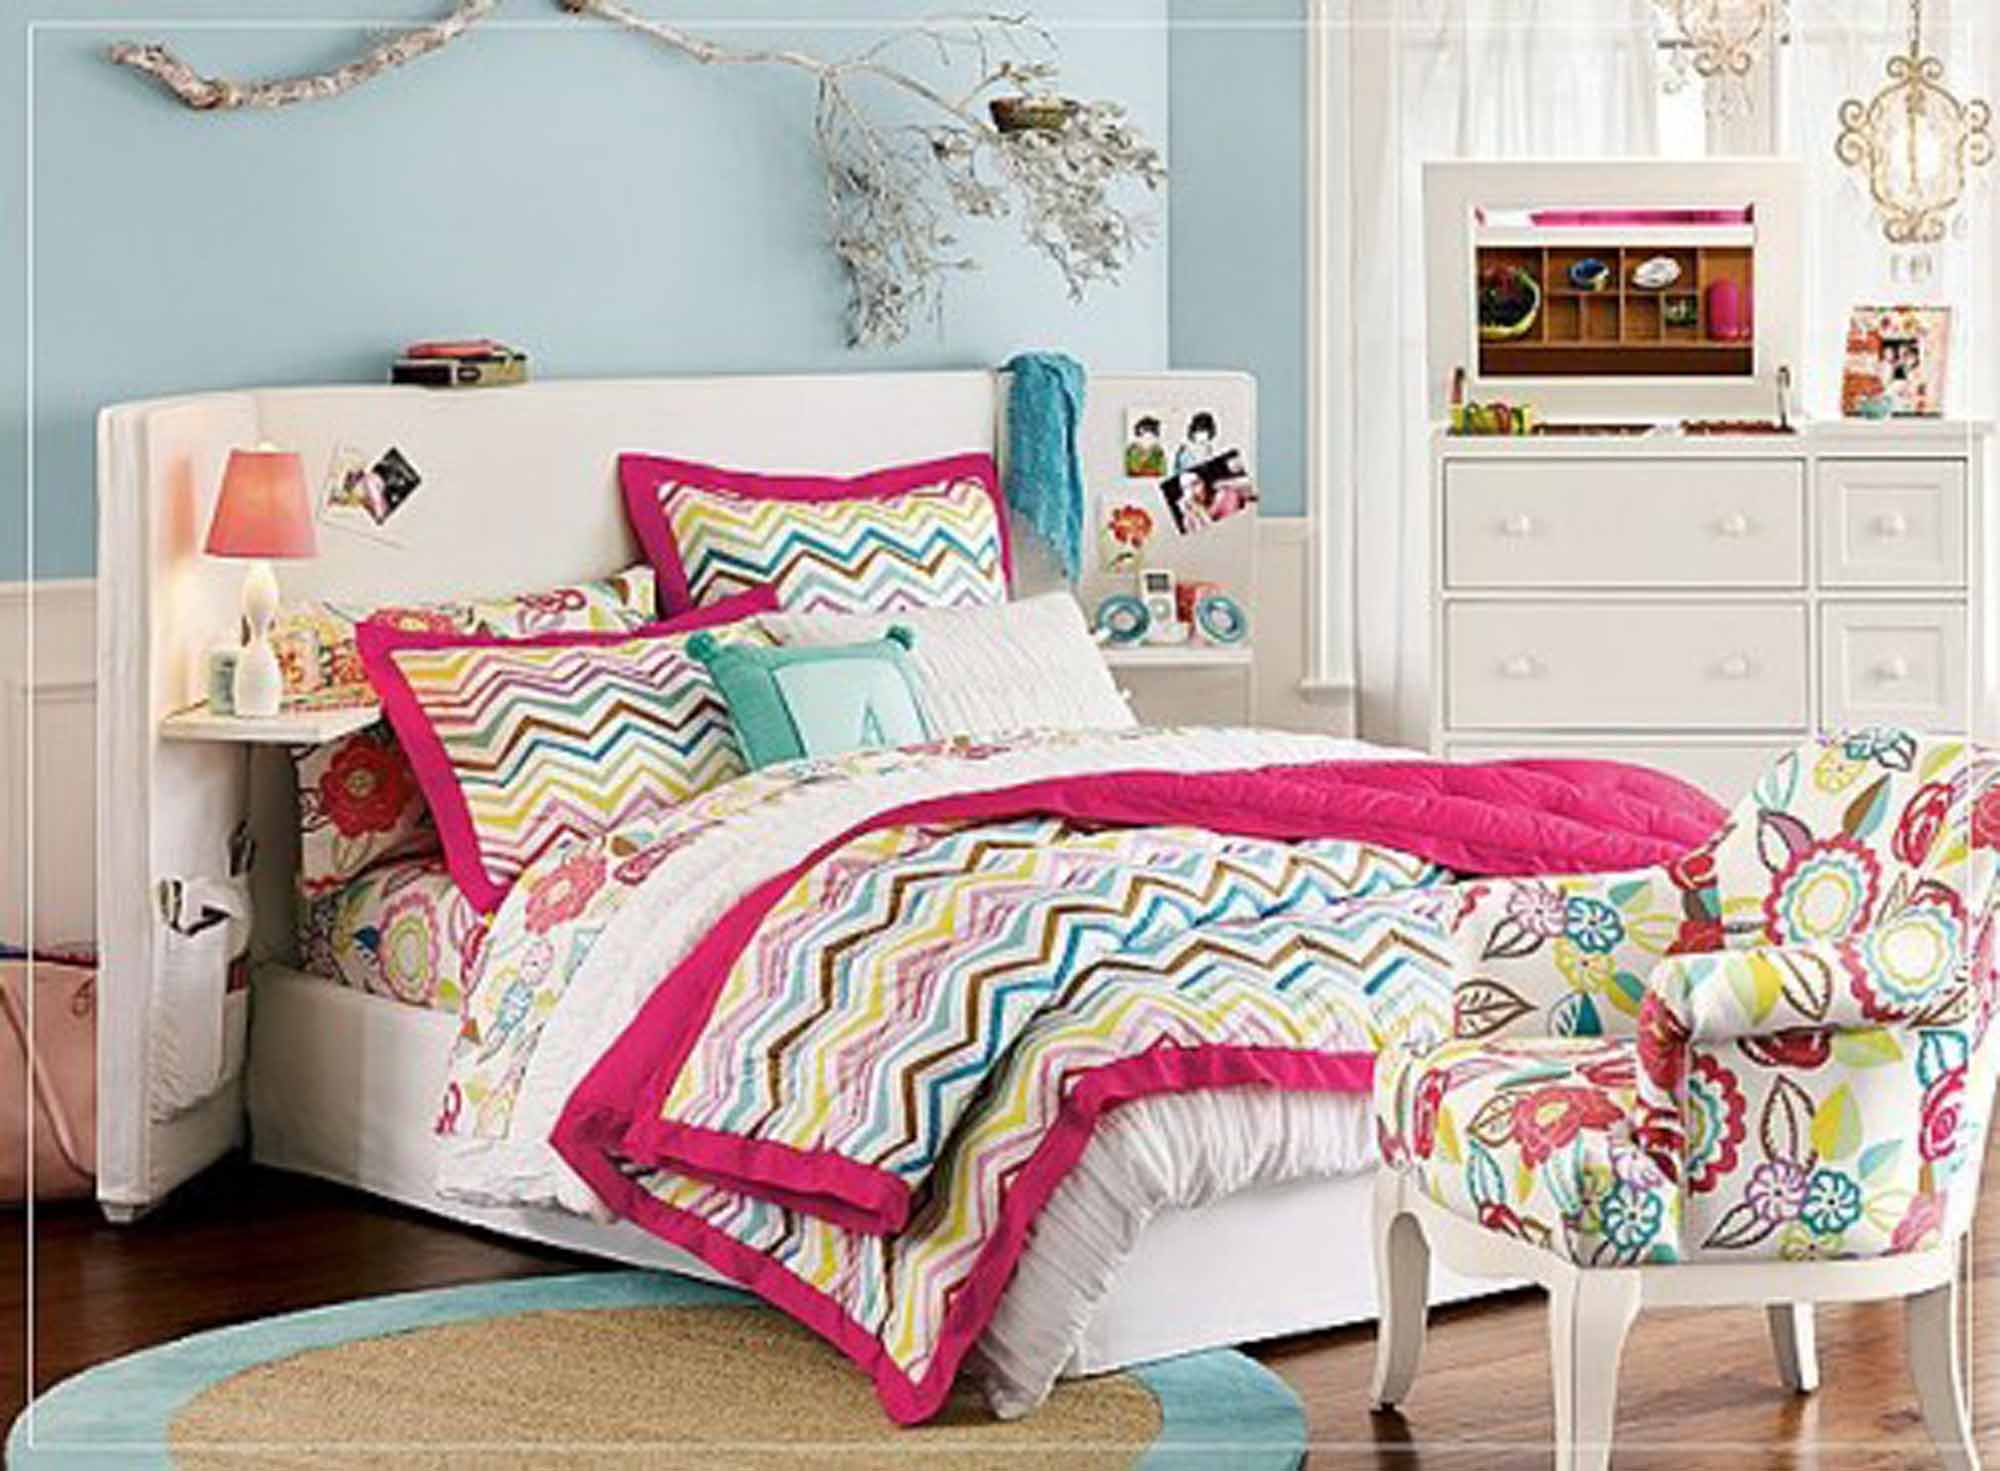 Decoration Ofcute Simple Bedroom Large Bed